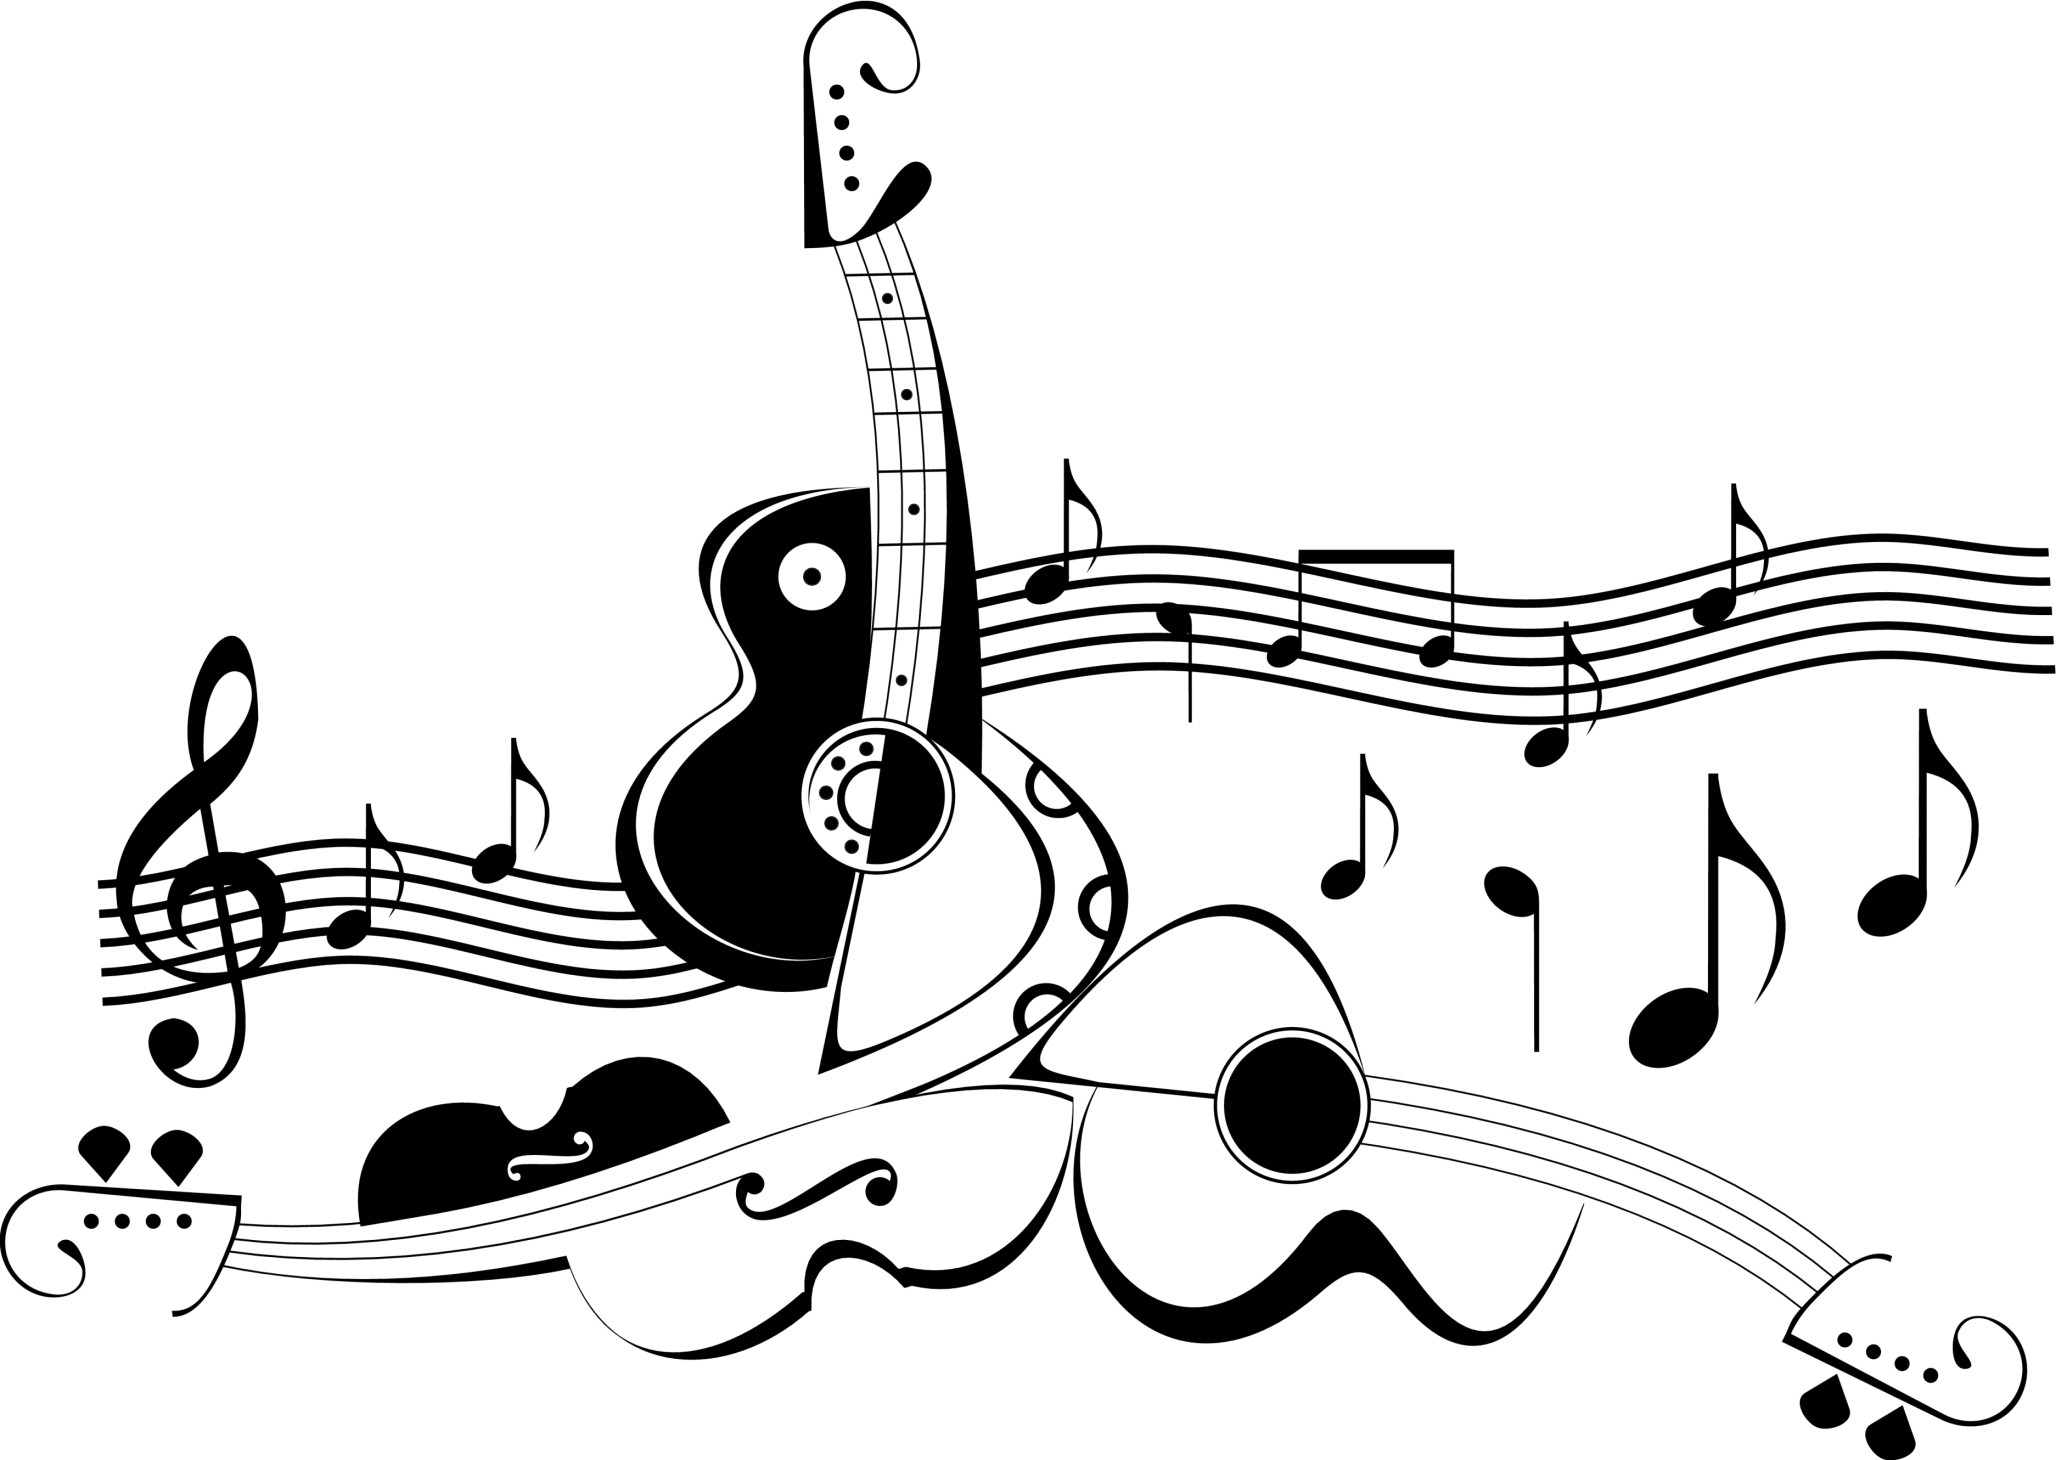 Musical Notes Wallpapers 68 Background Pictures Wallpaper Electric Guitar Plan Diagram Drawing Music Full High Definition Neon Keli Locascio